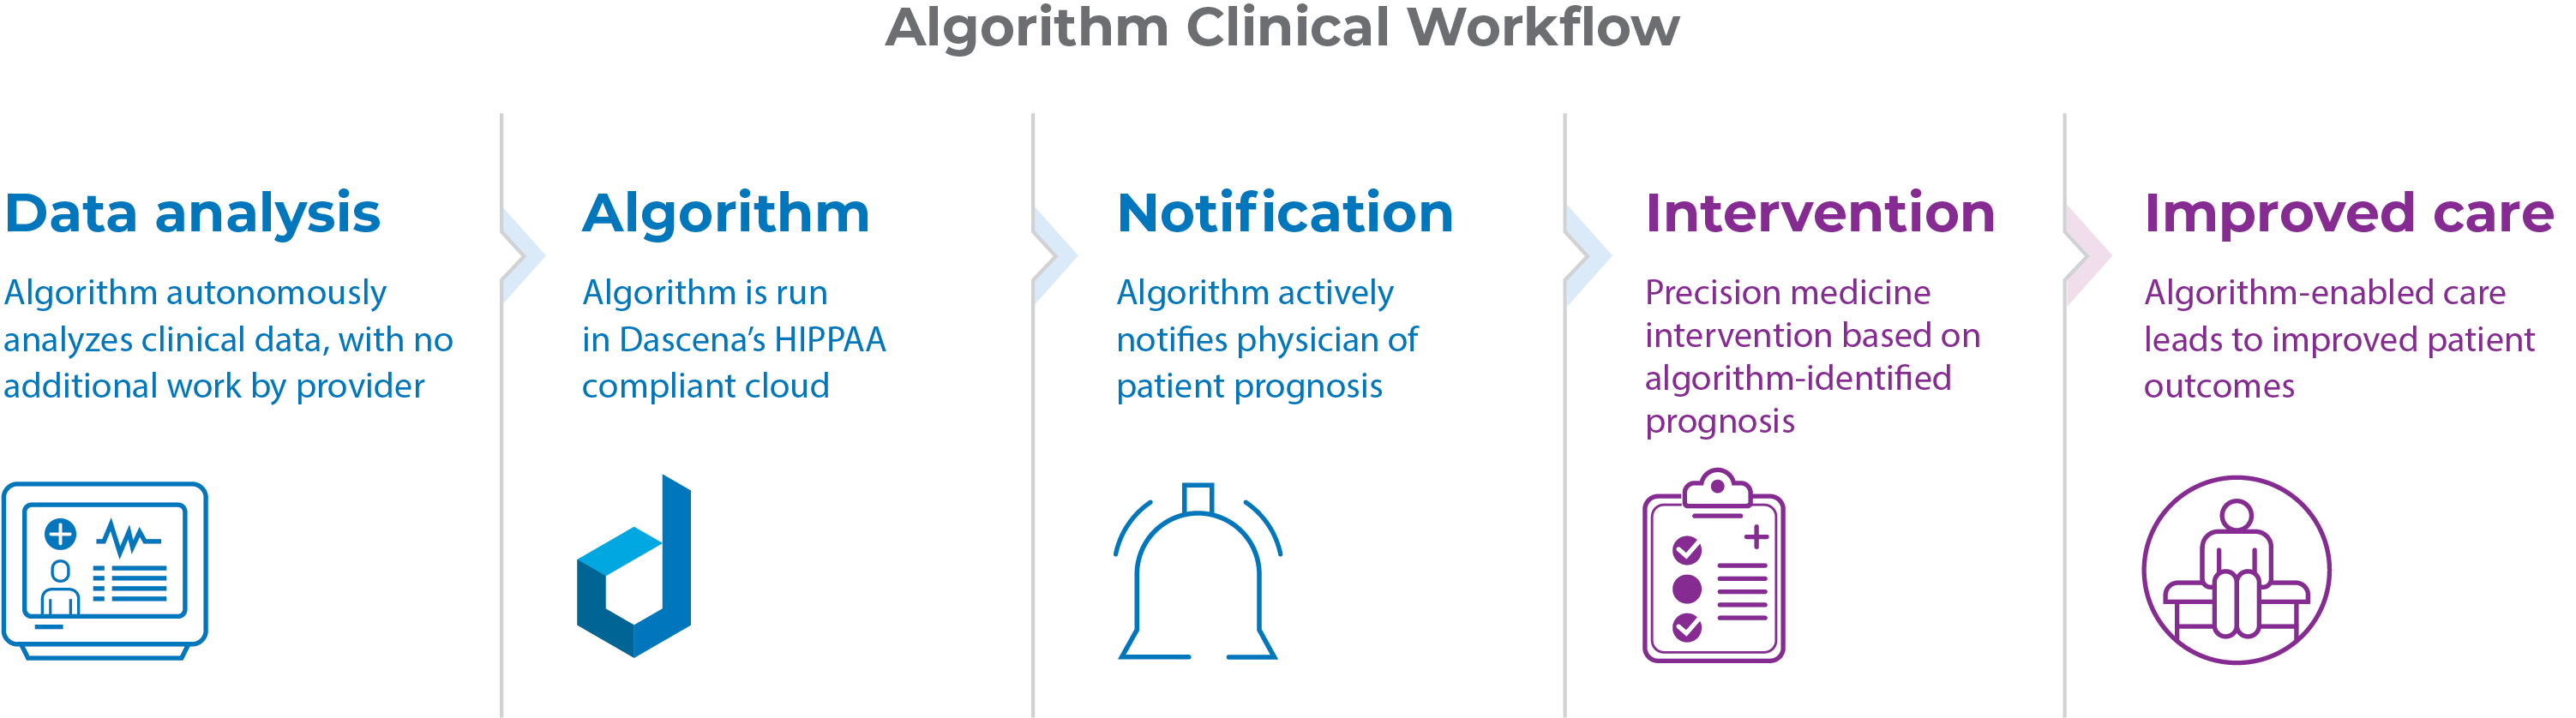 Clinical_workflow_updated